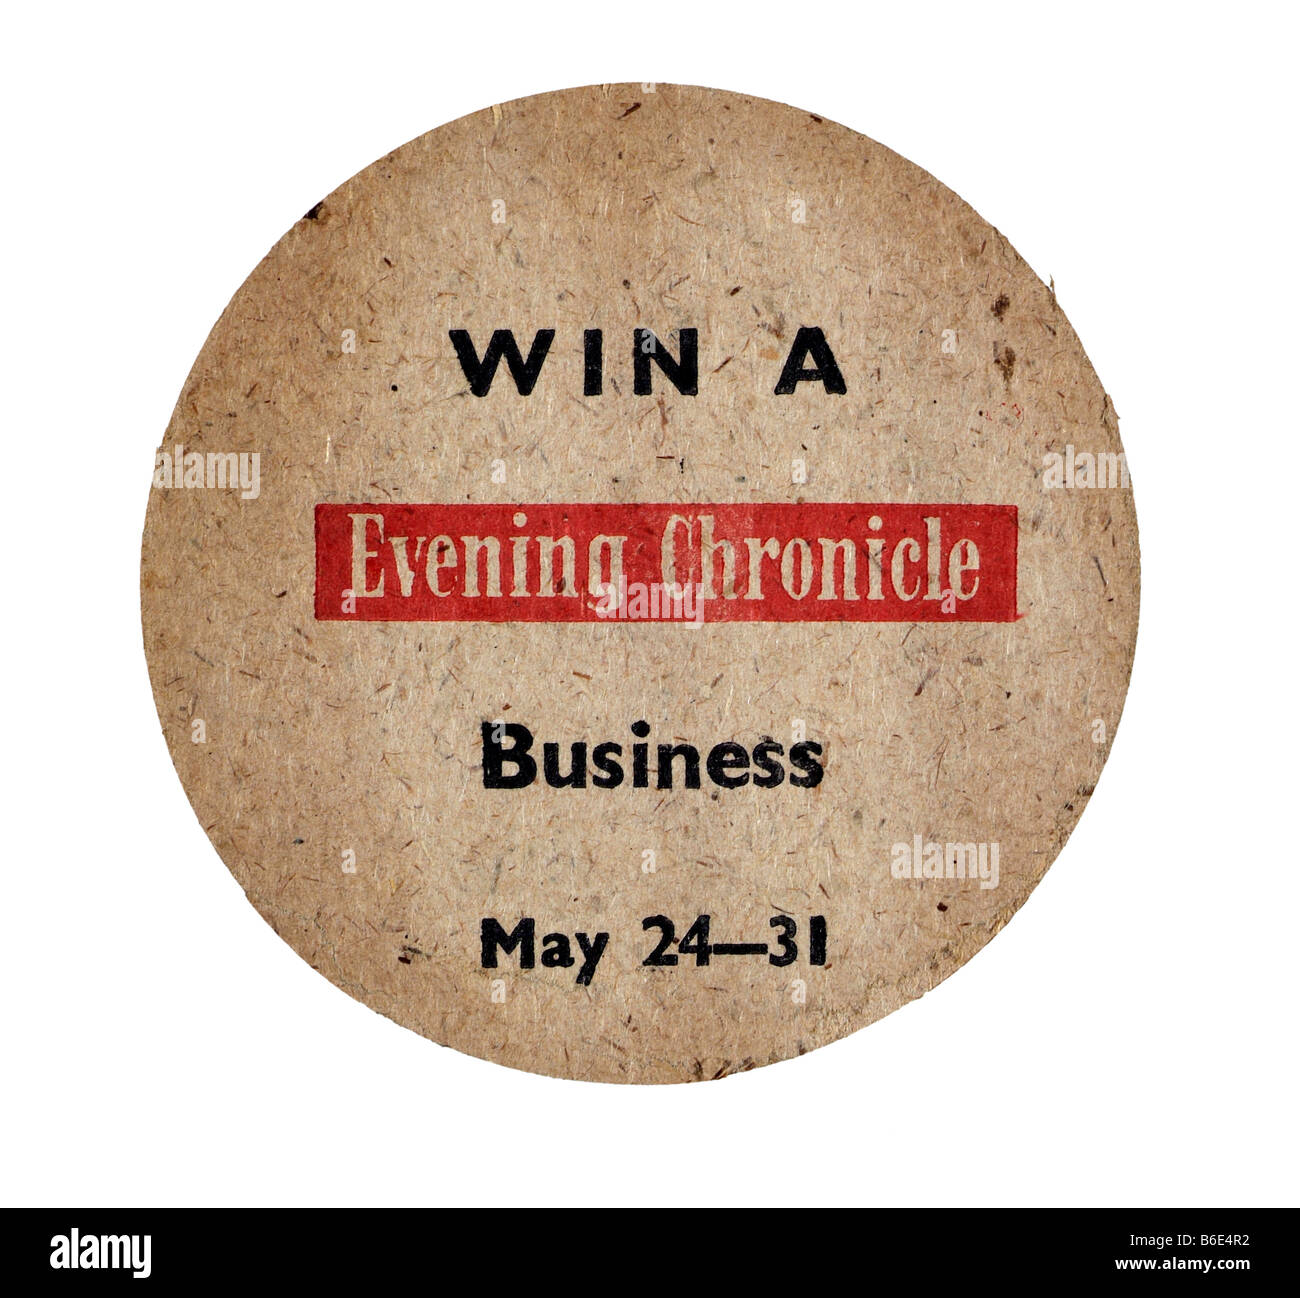 win a evening chronical business may 24 31 - Stock Image